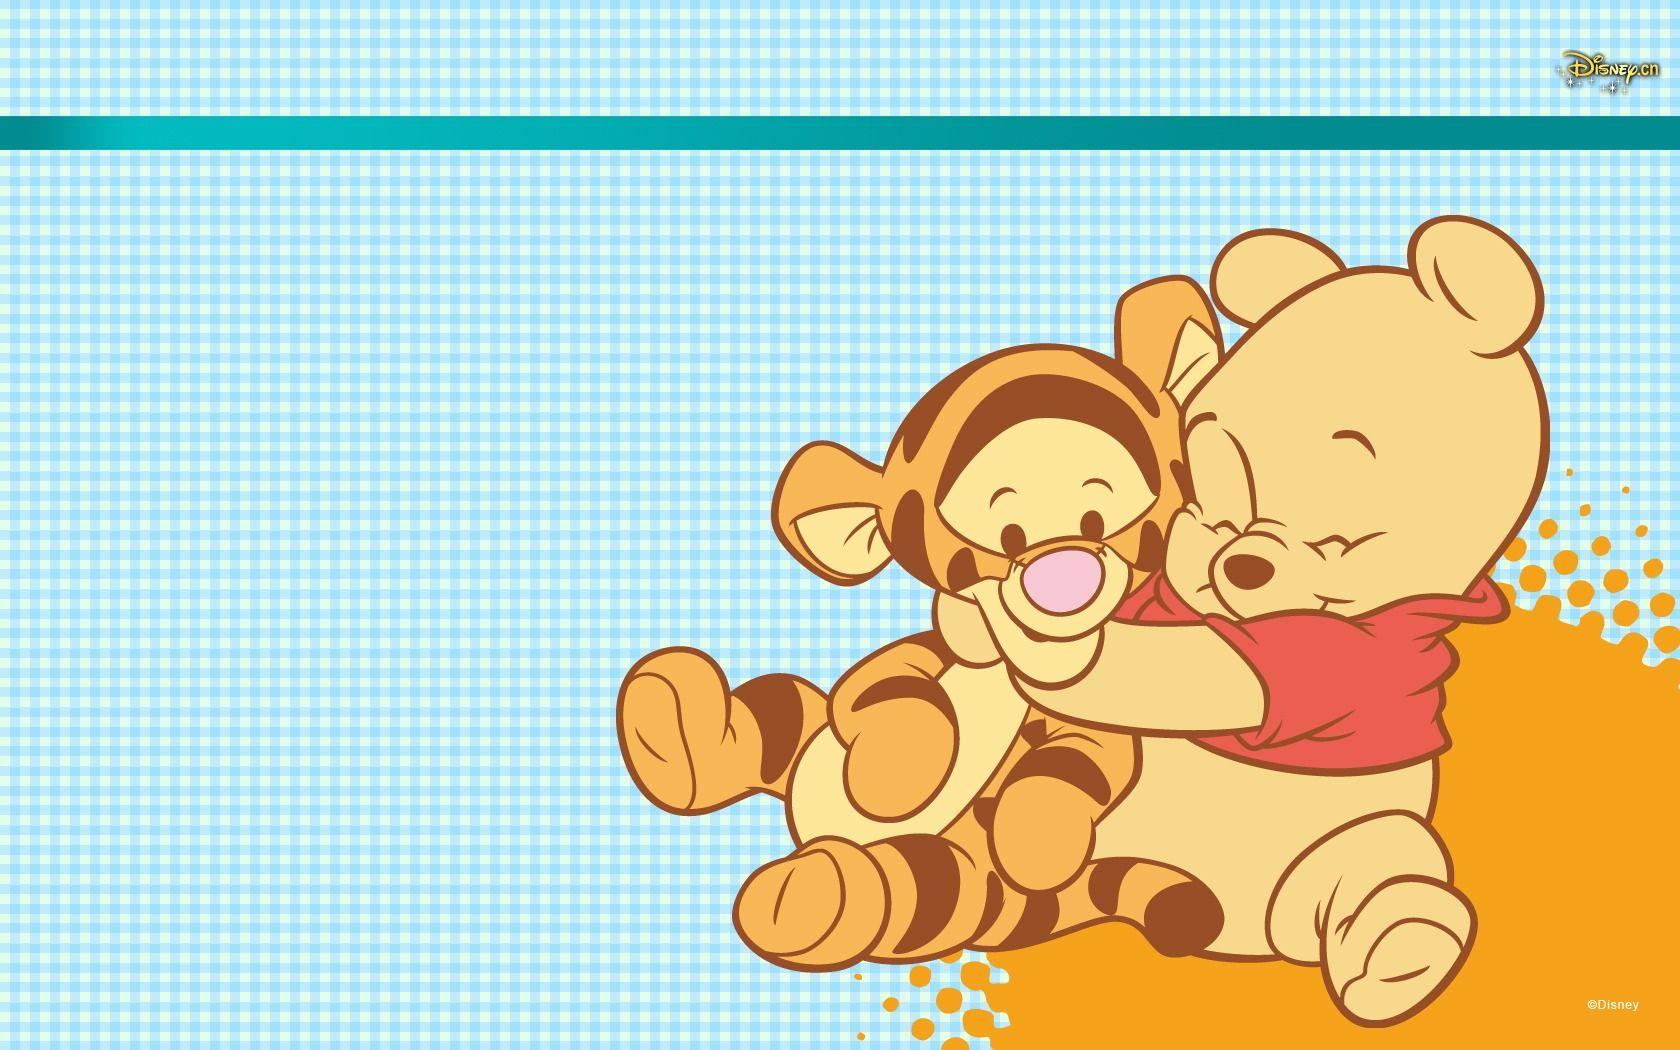 My friends tigger pooh wallpapers wallpaper cave wallpaper of winnie the pooh wallpaper hd download altavistaventures Images